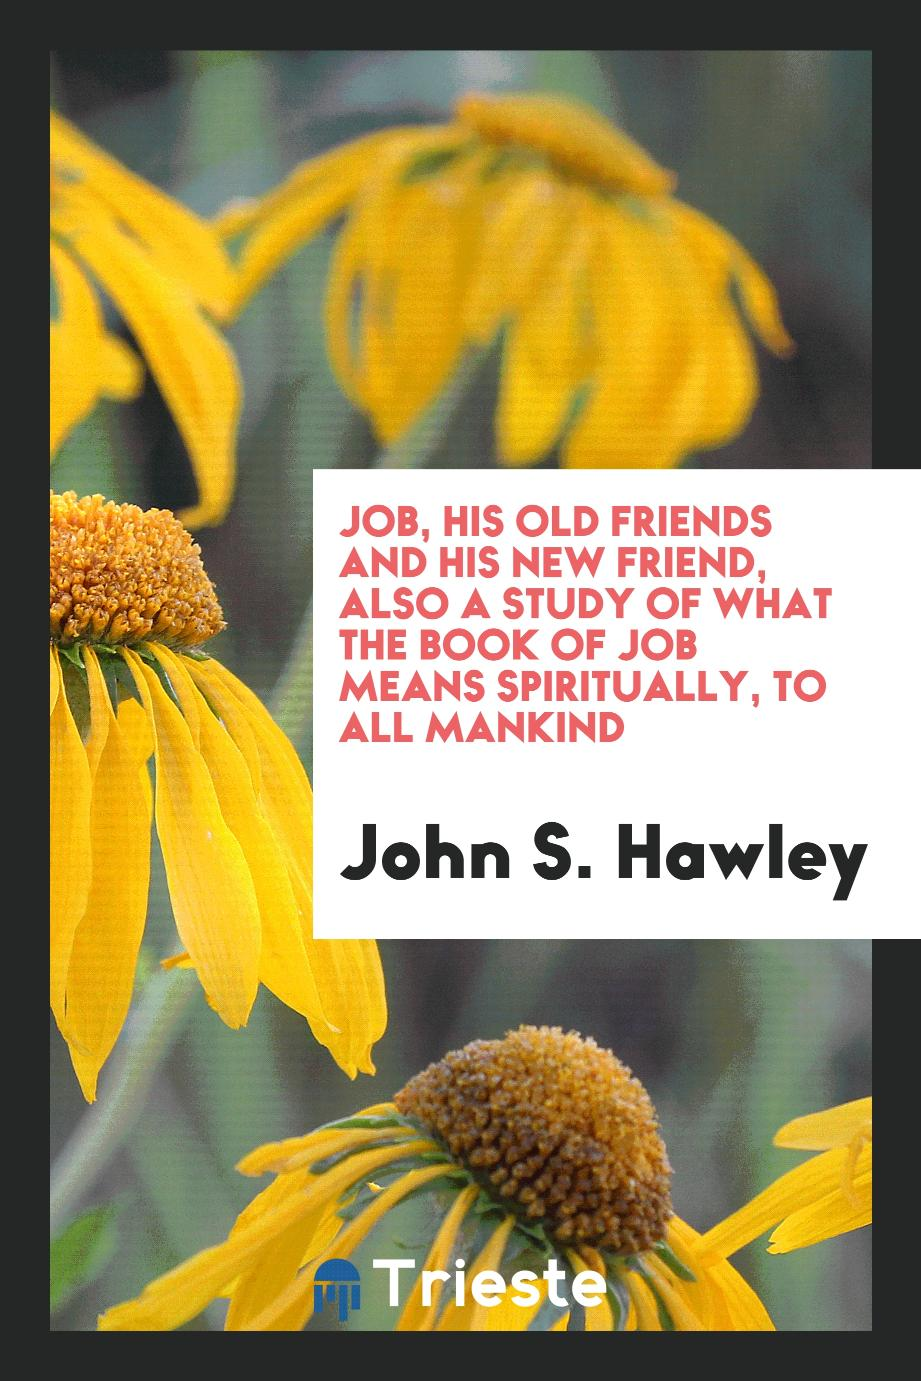 Job, His Old Friends and His New Friend, Also a Study of What the Book of Job Means Spiritually, to All Mankind